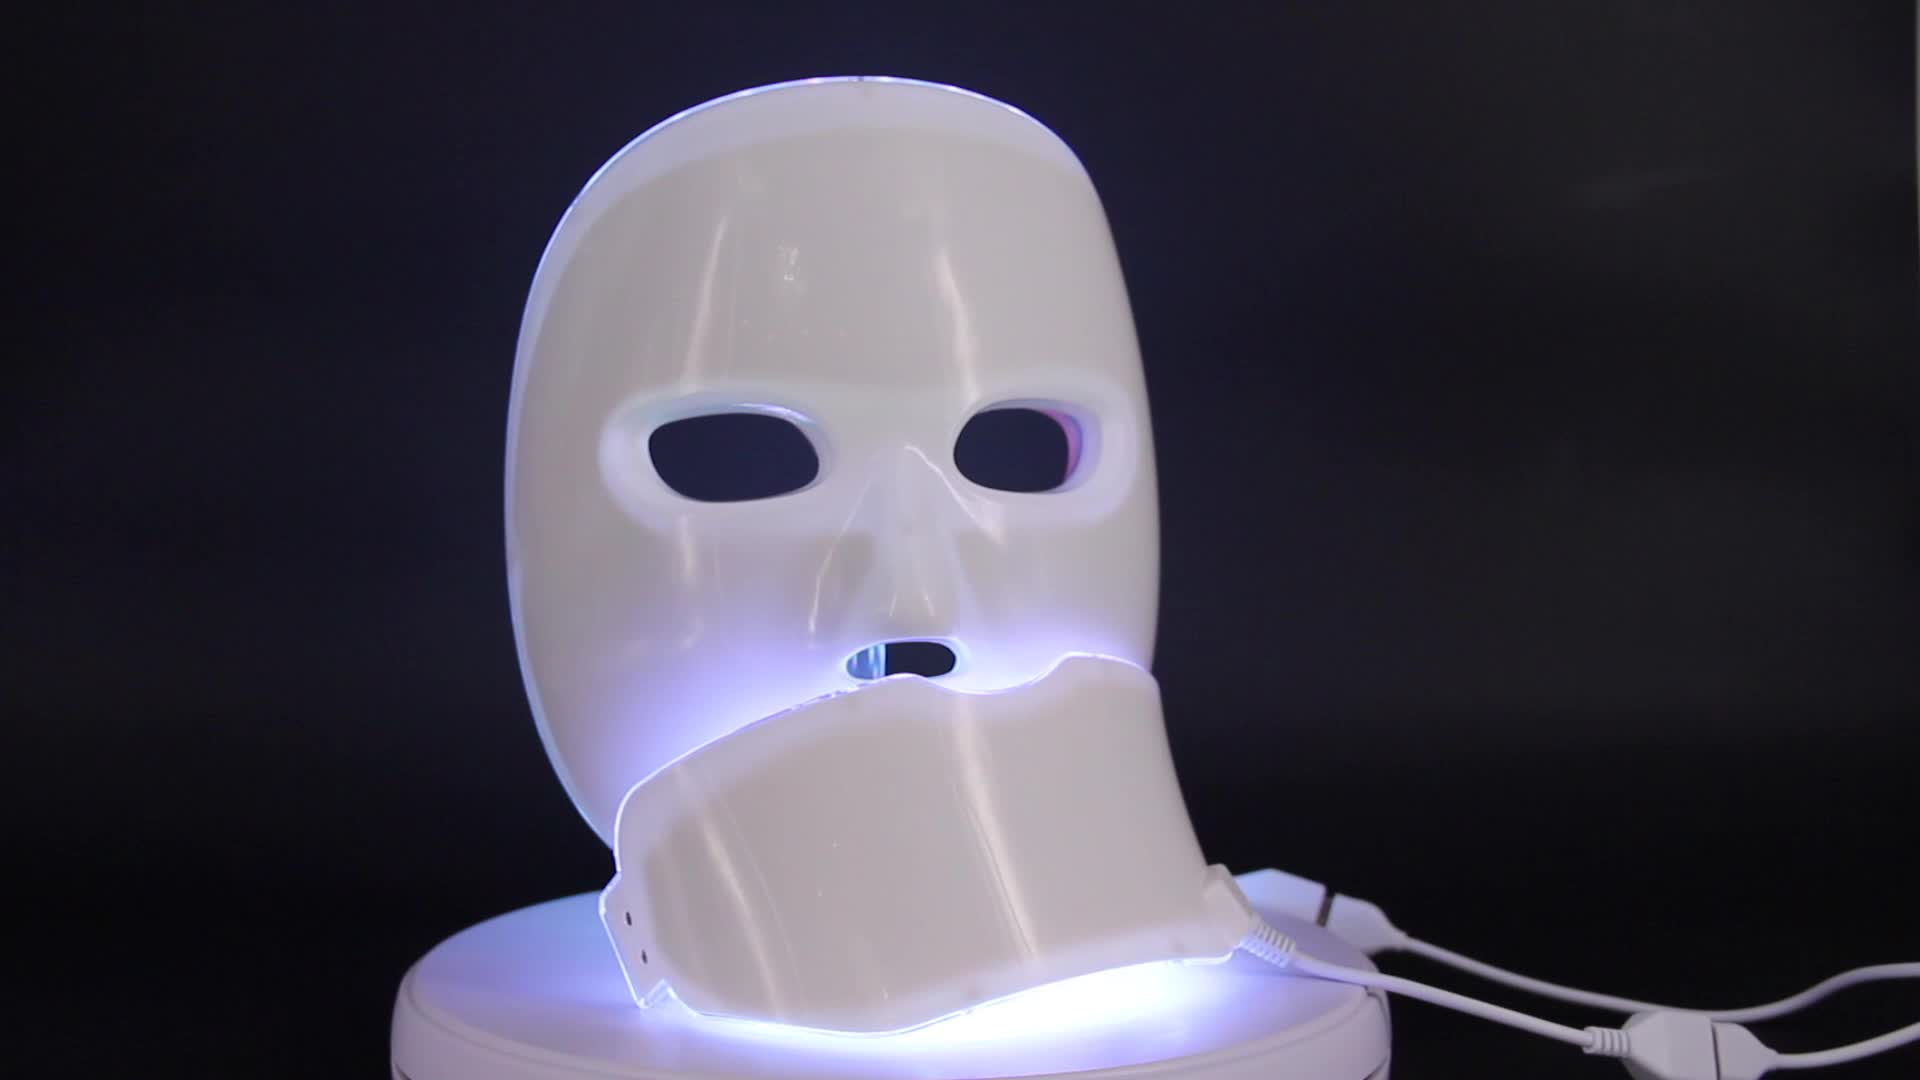 PDT LED light therapy machine photon facial neck mask